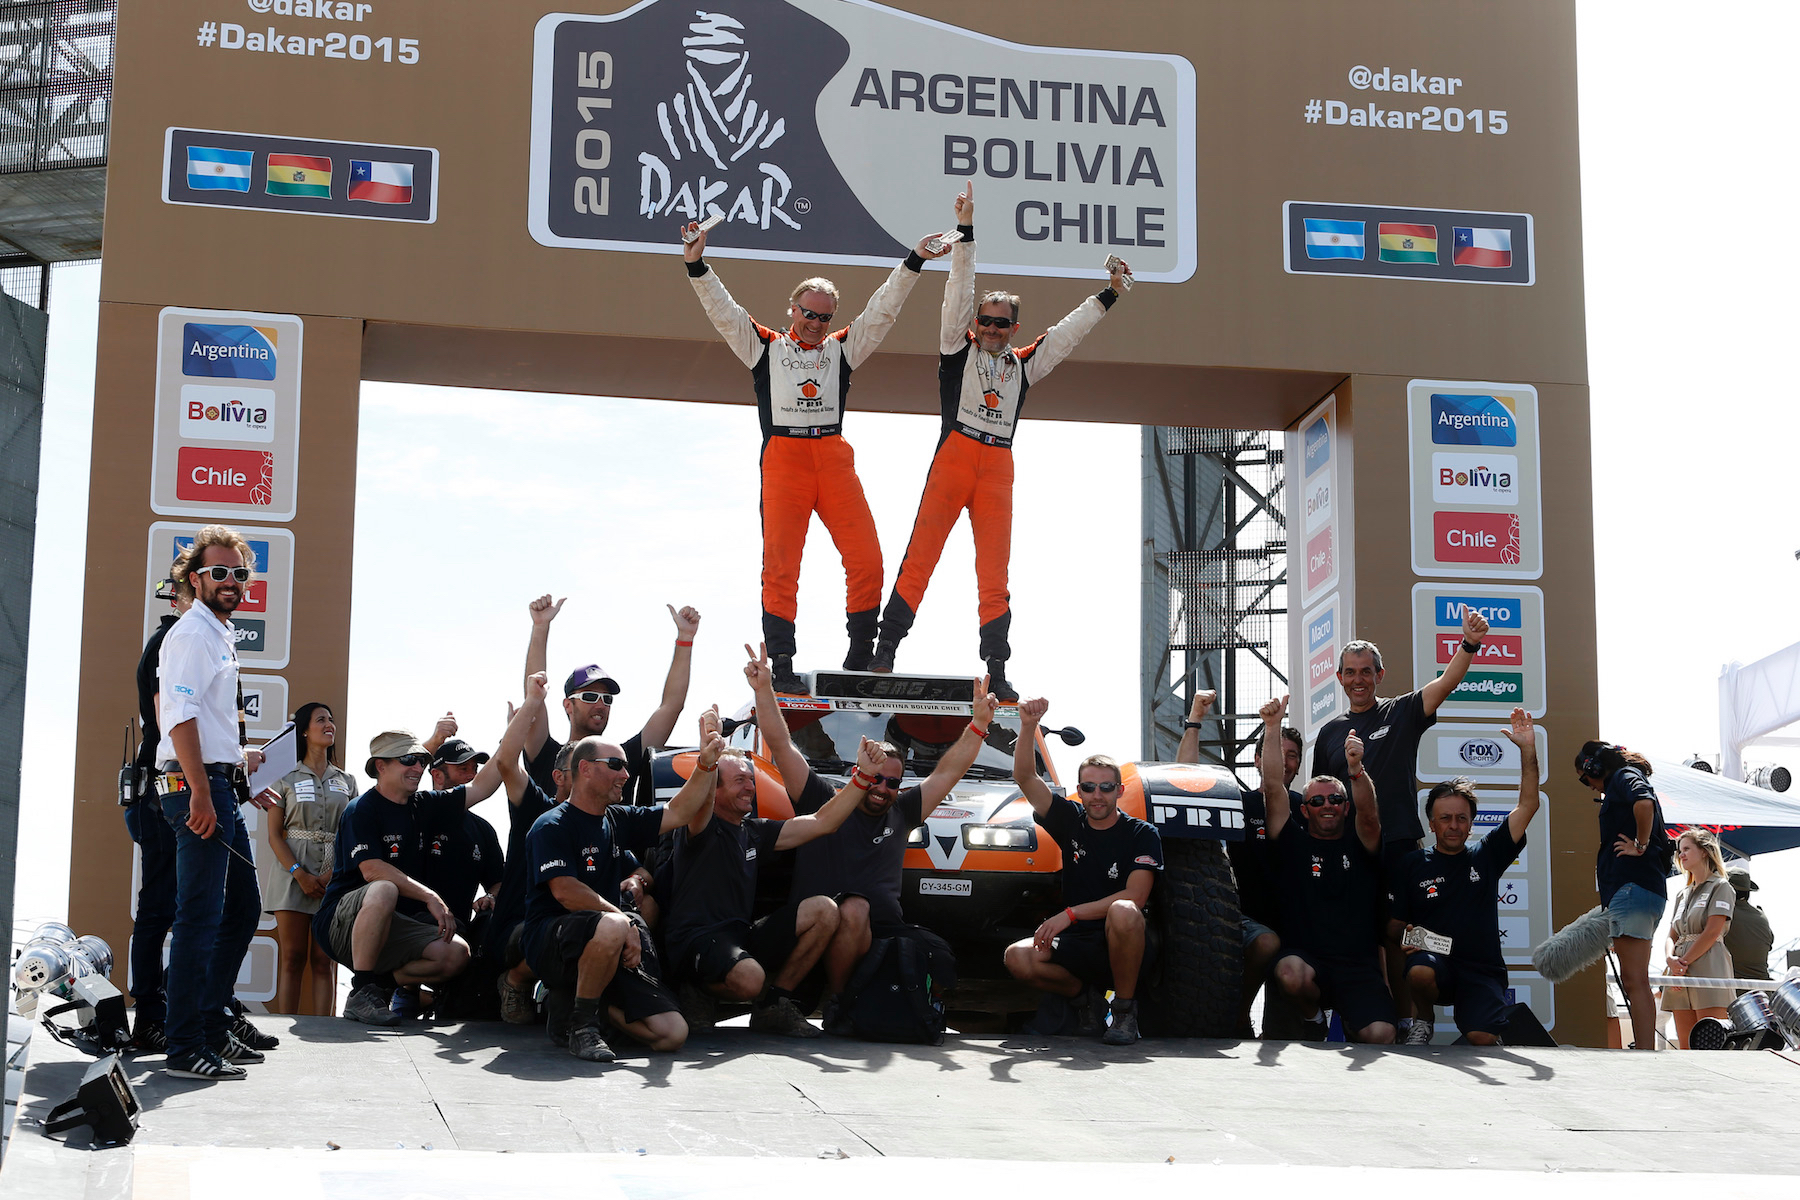 320 CHABOT Ronan (Fra) PILLOT Gilles (Fra) Smg ambiance during the Dakar 2015 Argentina Bolivia Chile, Stage 13 Finish and Podium / Etape 13, Rosario to Buenos Aires on January 17th 2015 at Rosario, Argentina. Photo Francois Flamand / DPPI